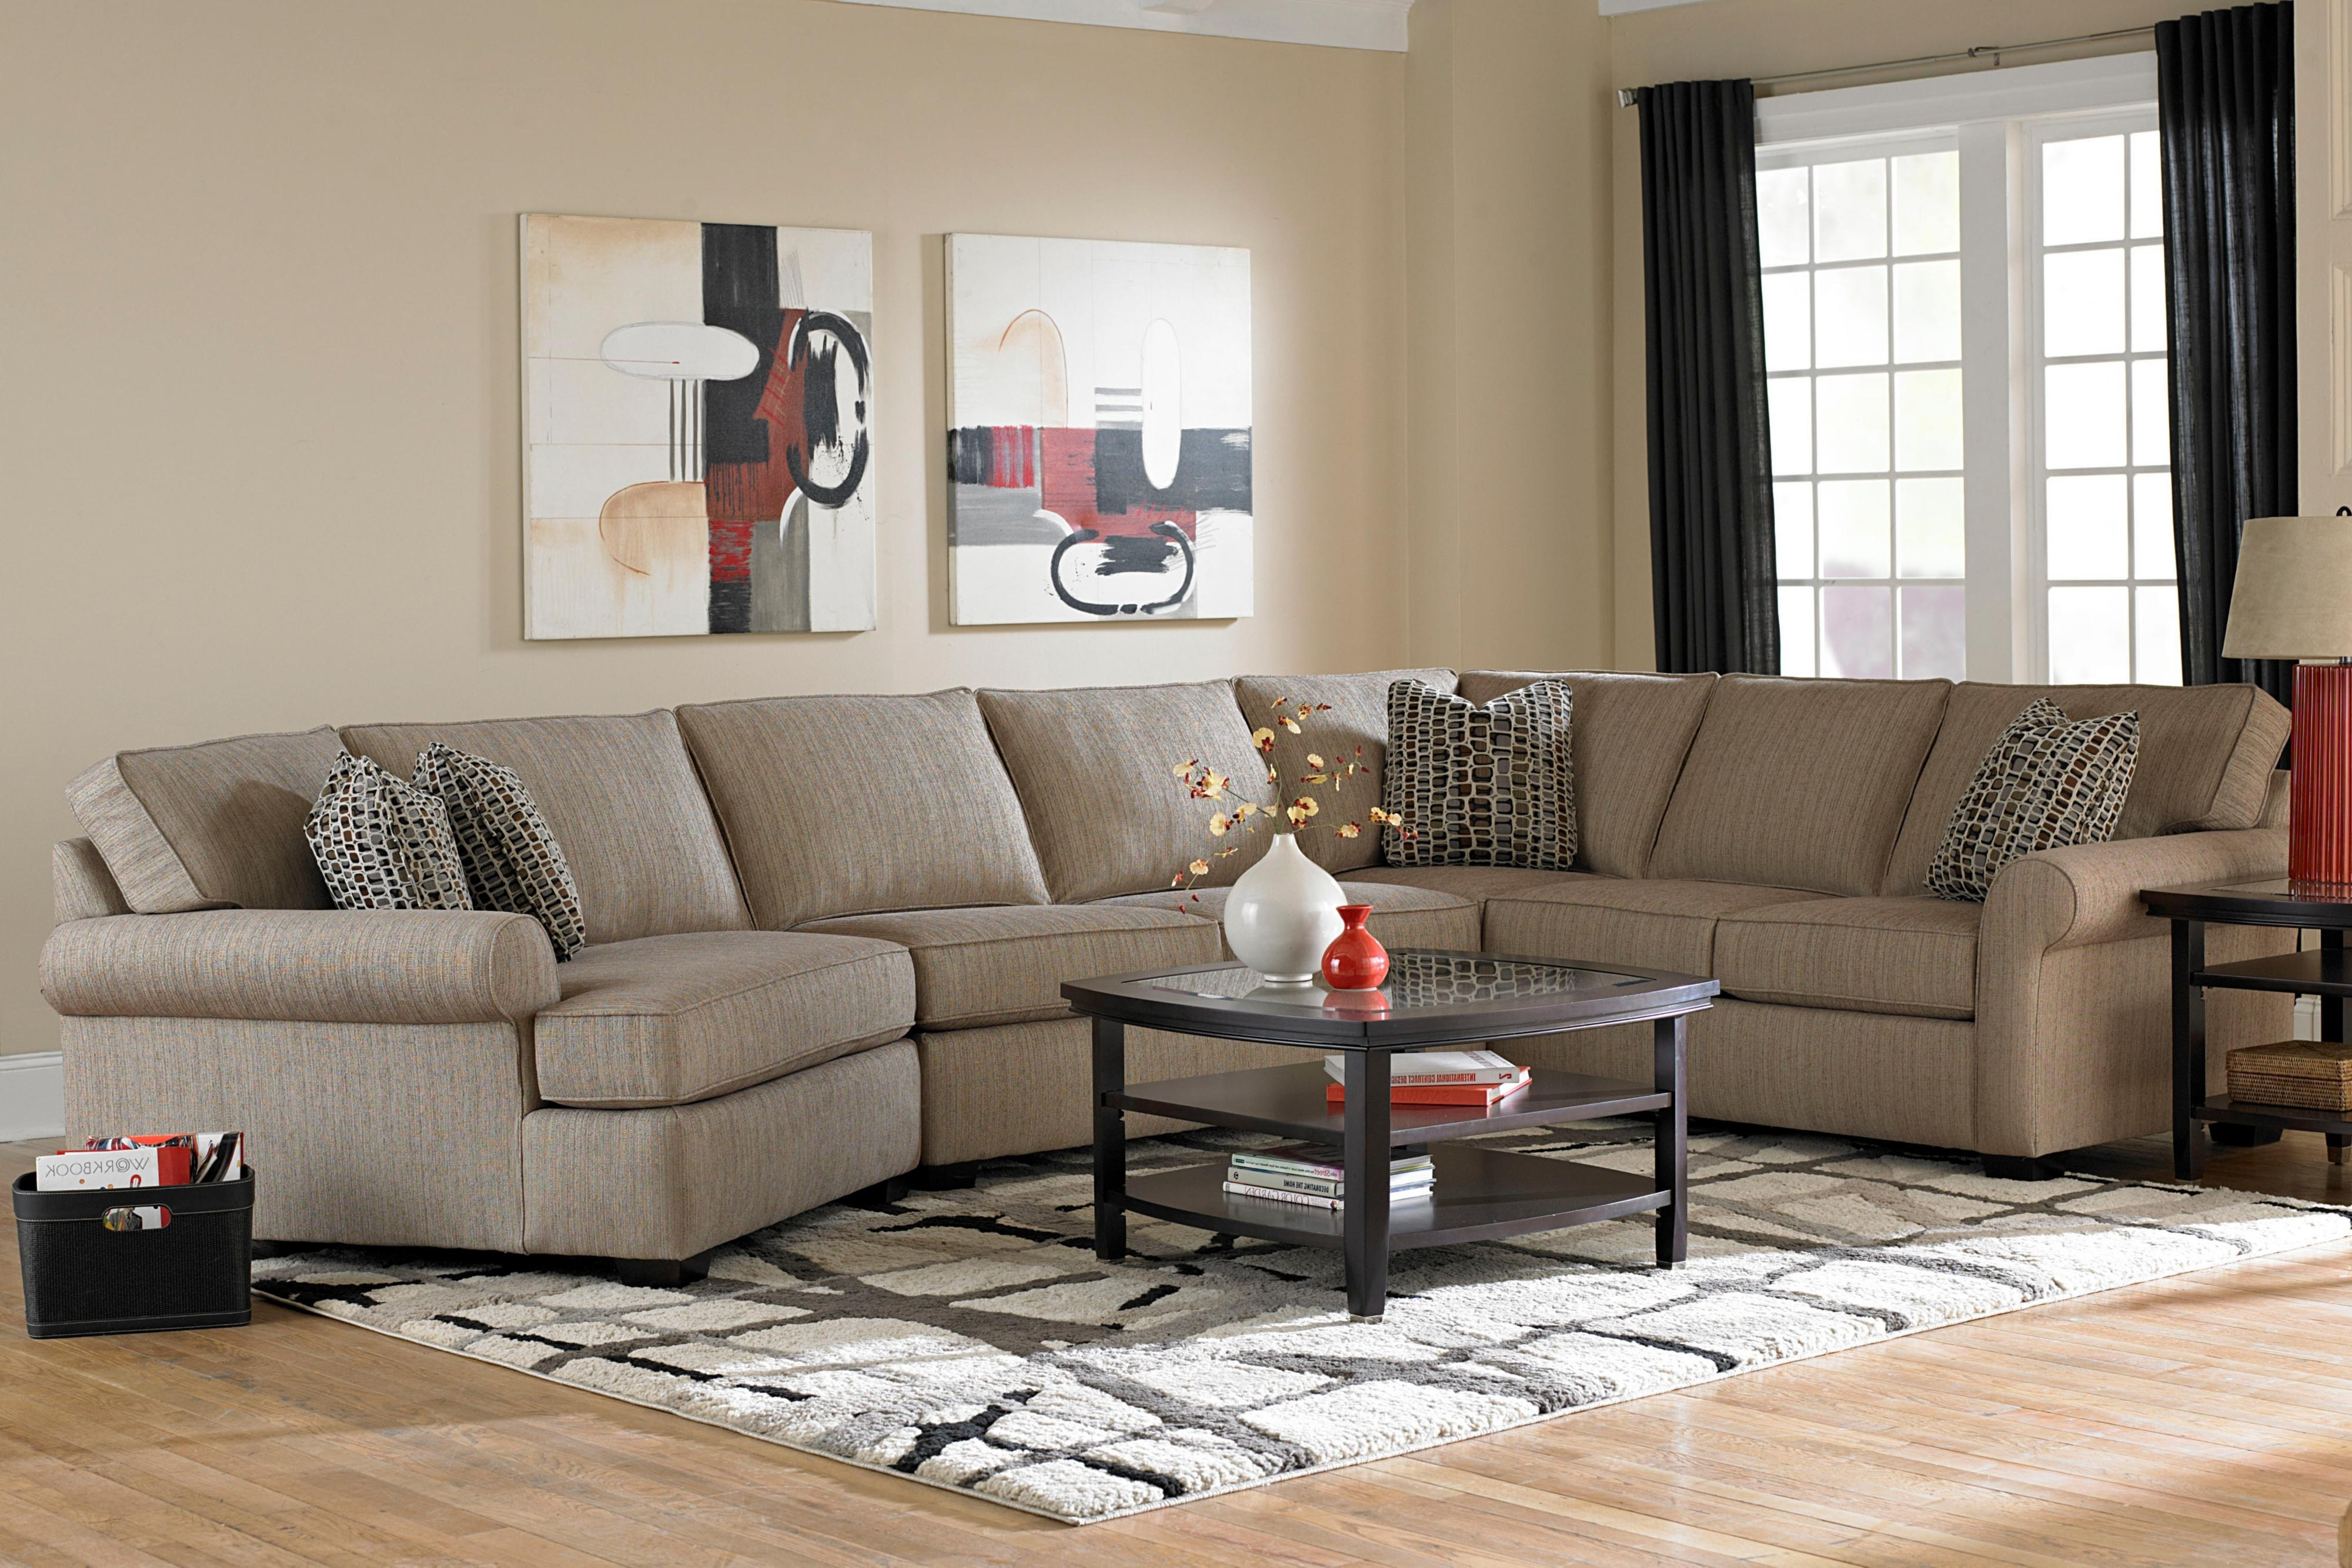 Broyhill Furniture Ethan Transitional Sectional Sofa With Right Within Well Known Philadelphia Sectional Sofas (View 3 of 20)